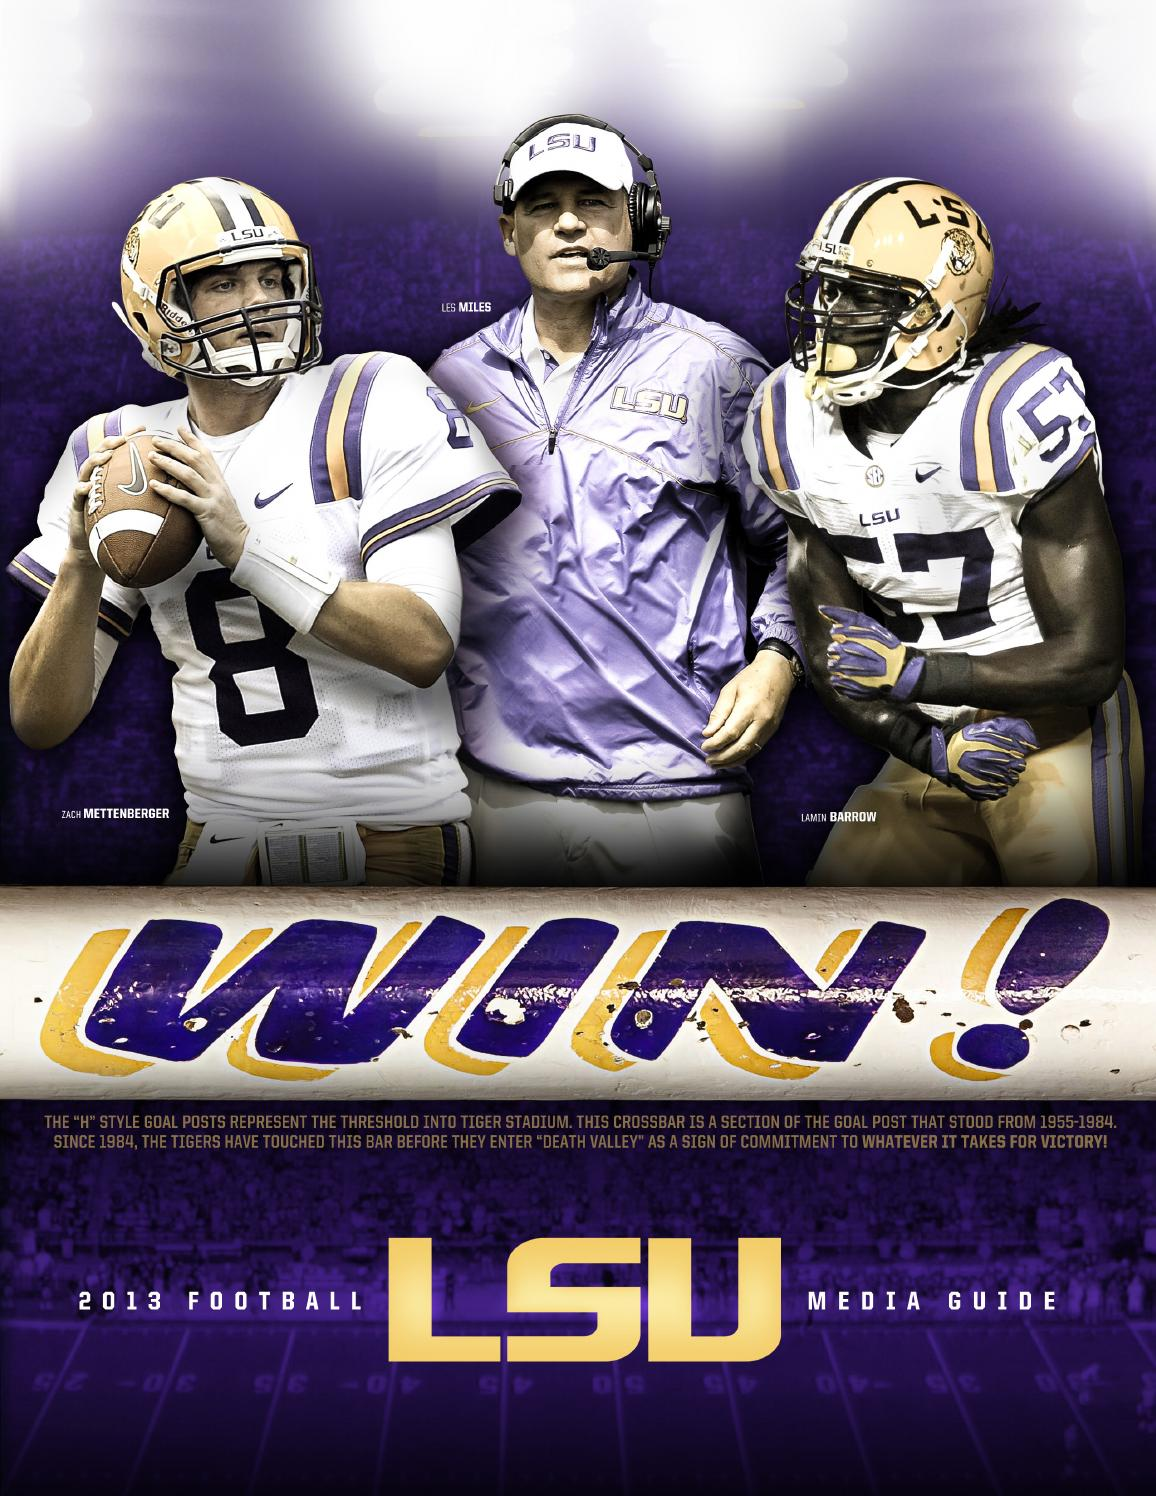 ae6a49181c9 2013 LSU Football Media Guide by LSU Athletics - issuu